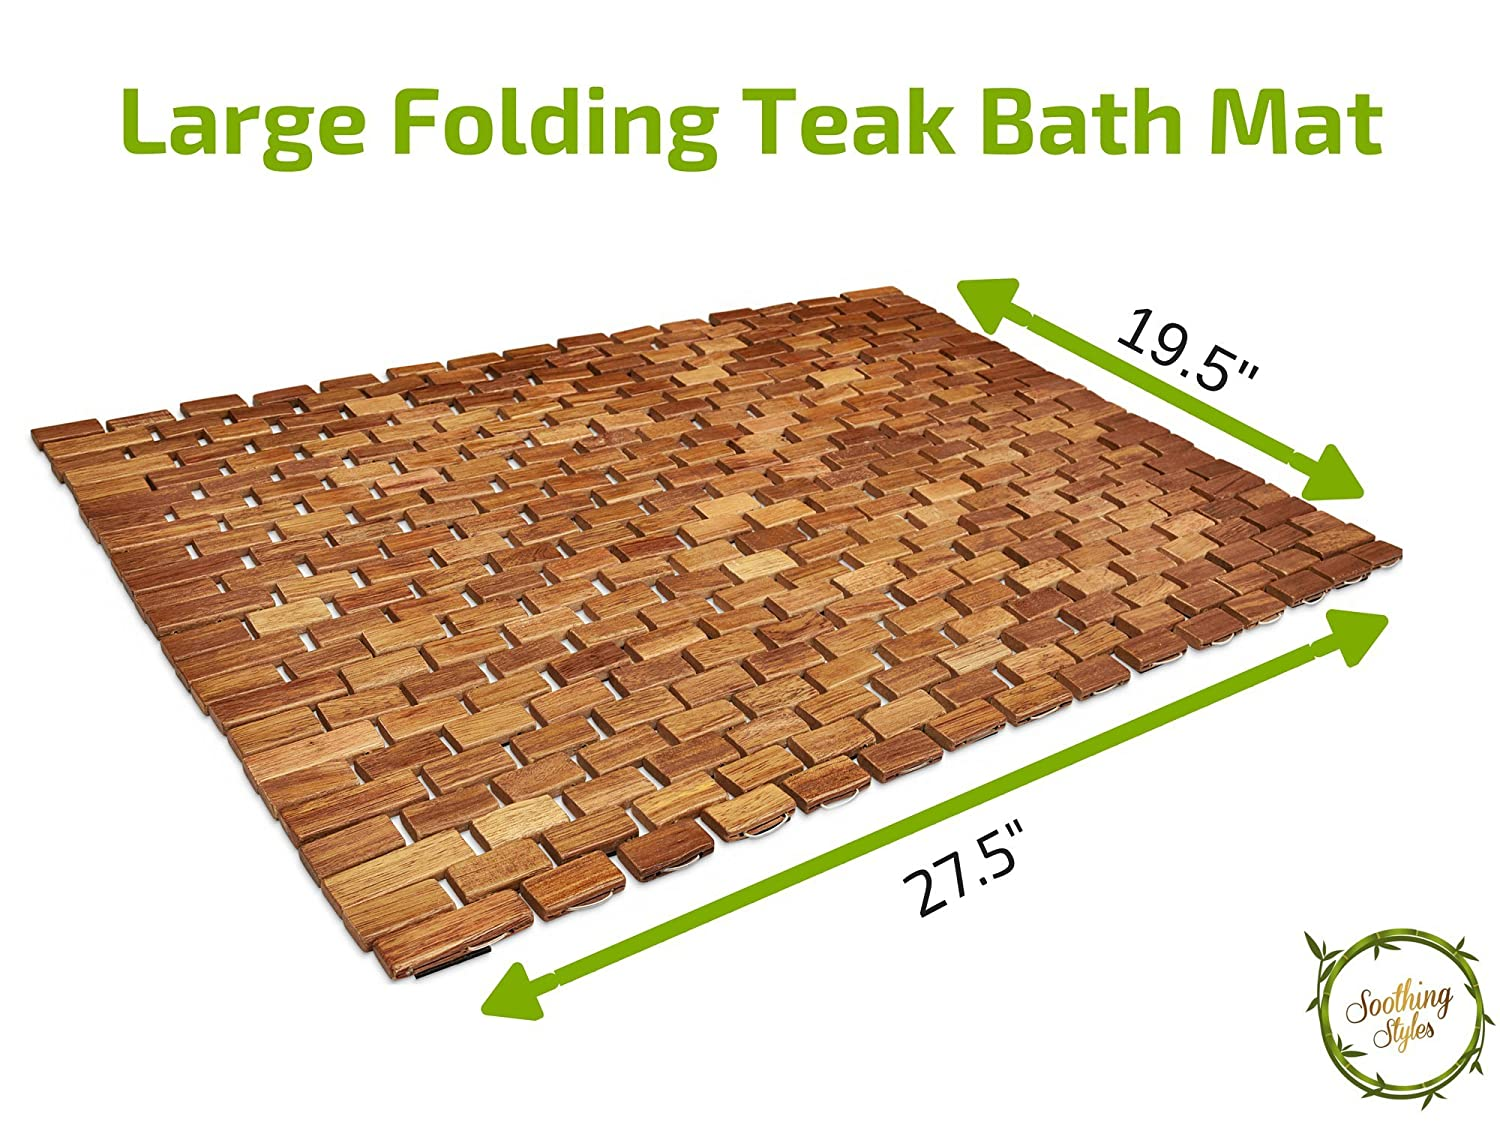 Amazon.com: Soothing Styles Handcrafted Folding Teak Shower Mat ...